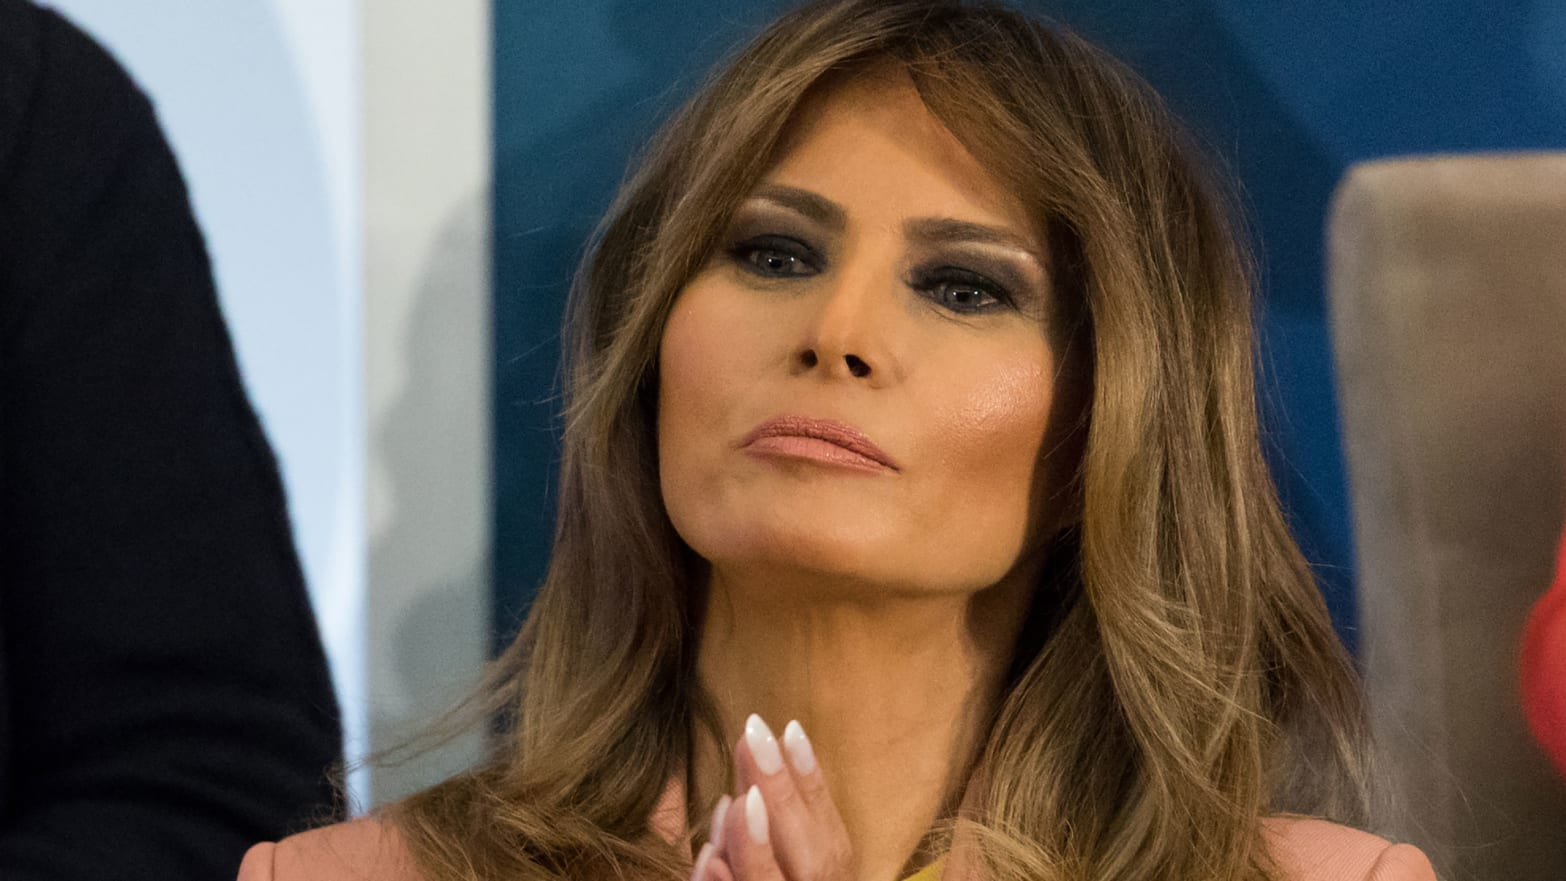 Britain's Daily Telegraph Forced to Apologize to Melania Trump